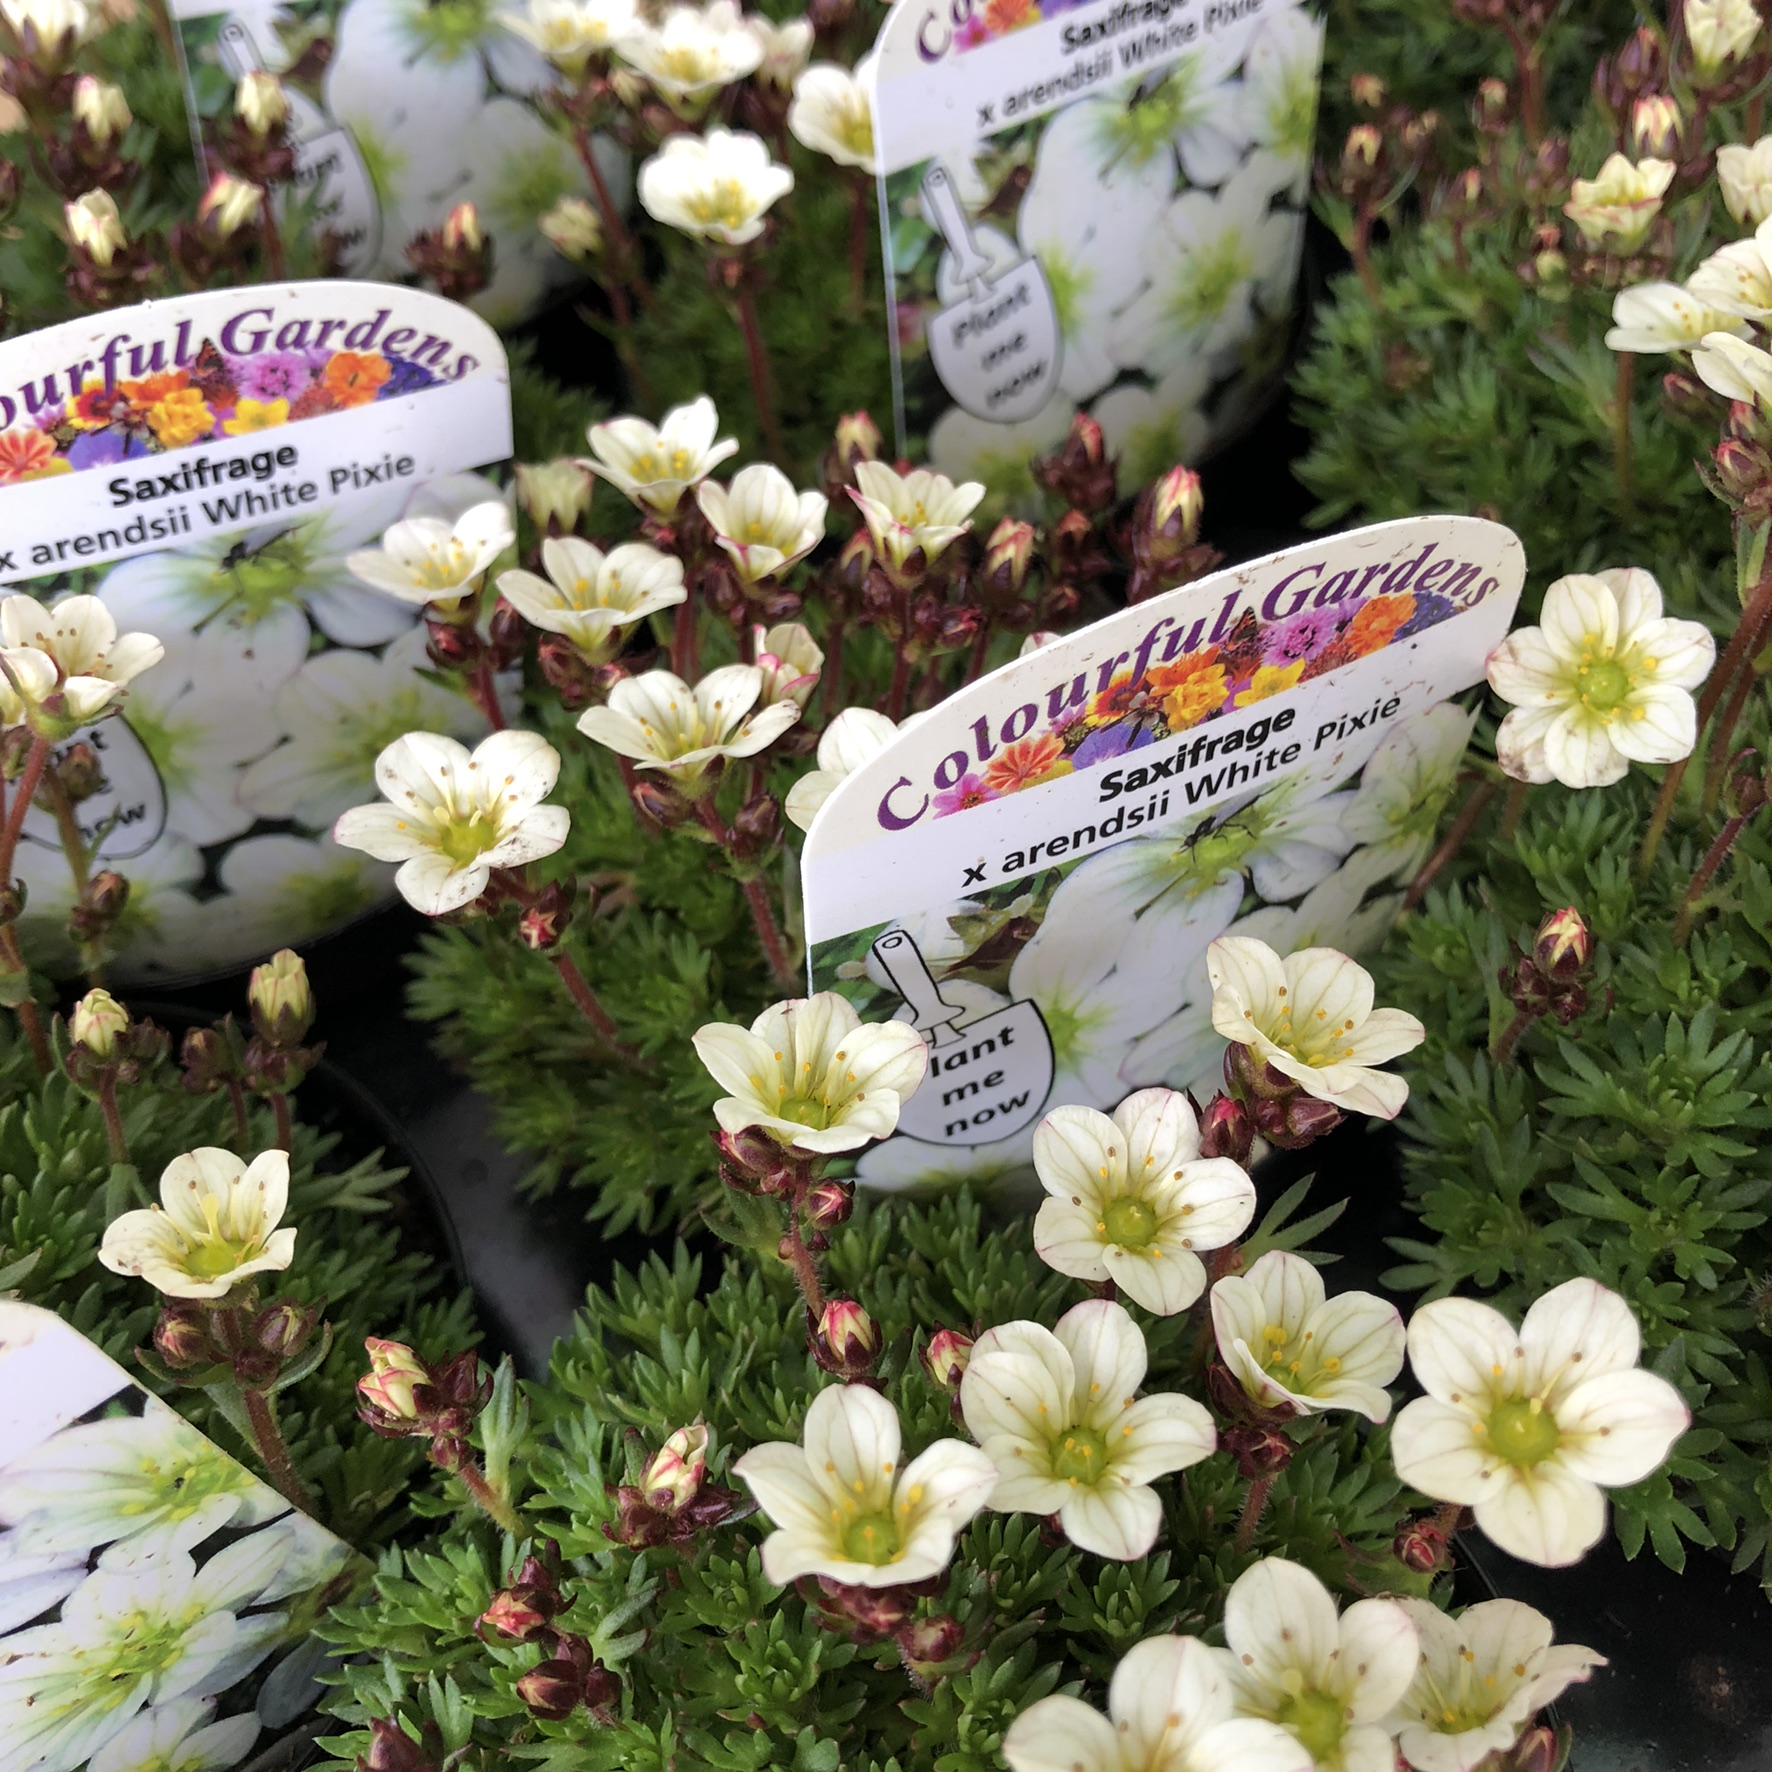 Picture of Saxifrage arendsii 'White Pixie'